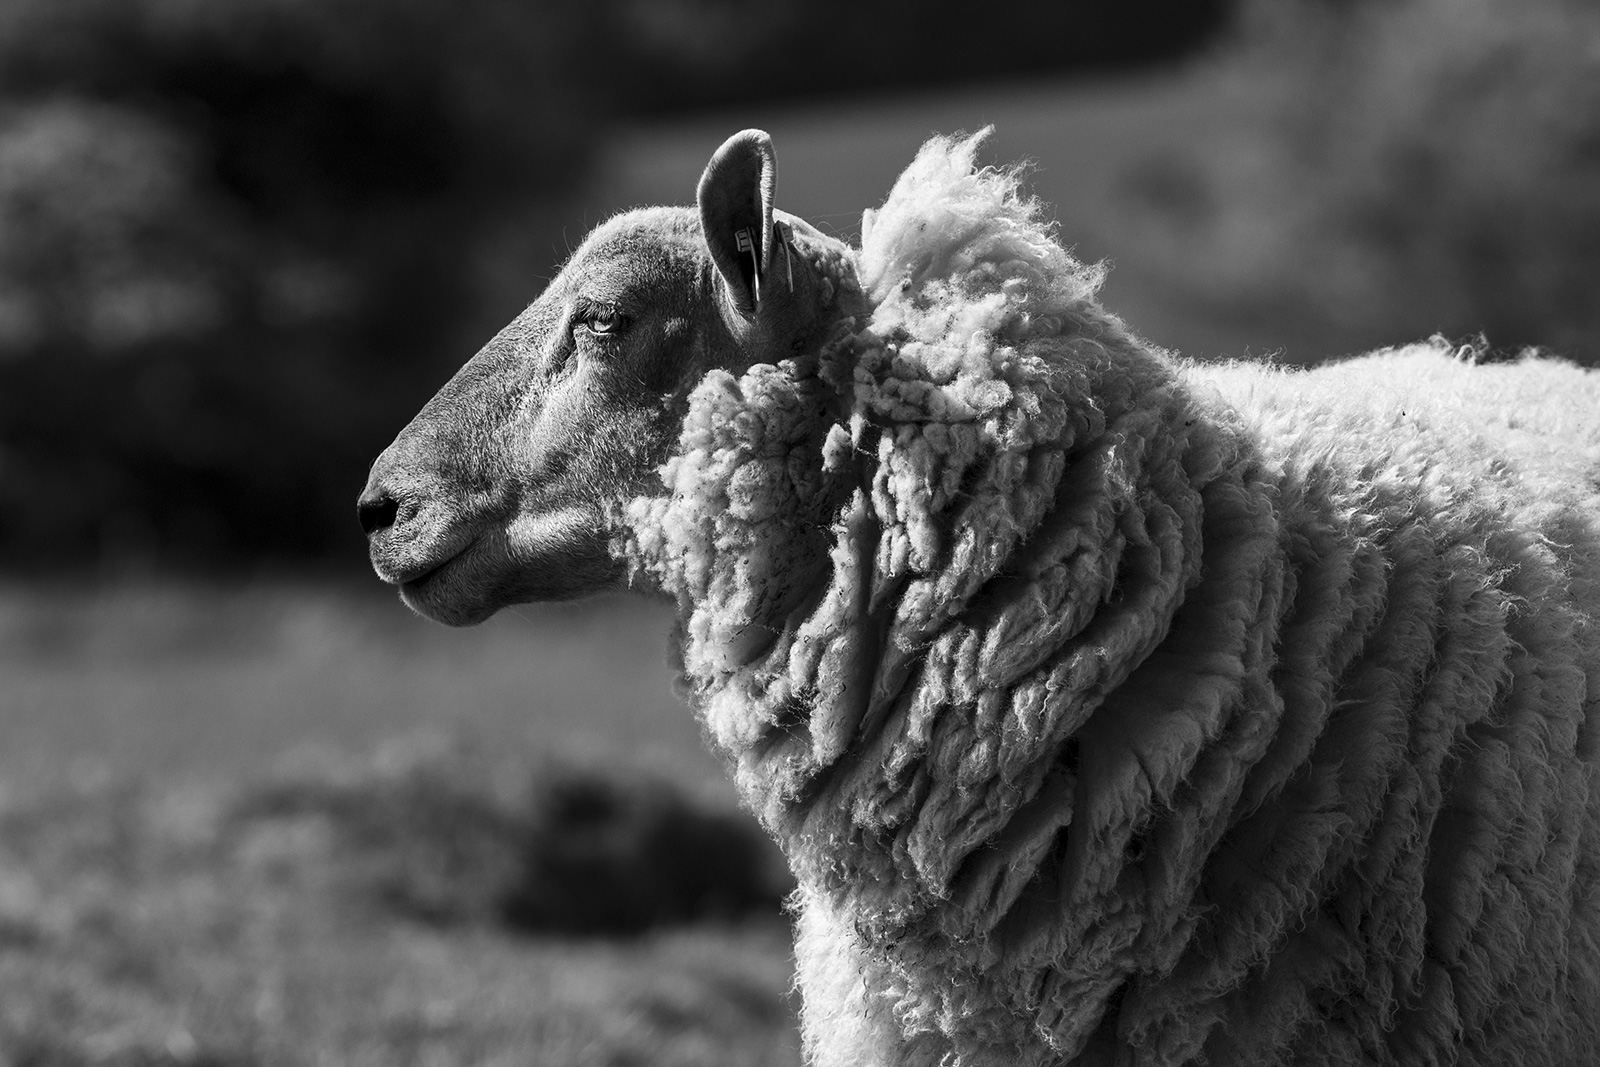 Female sheep profile portrait, black and white portrait composition Poynings West Sussex ©P. Maton 2019 eyeteeth.net